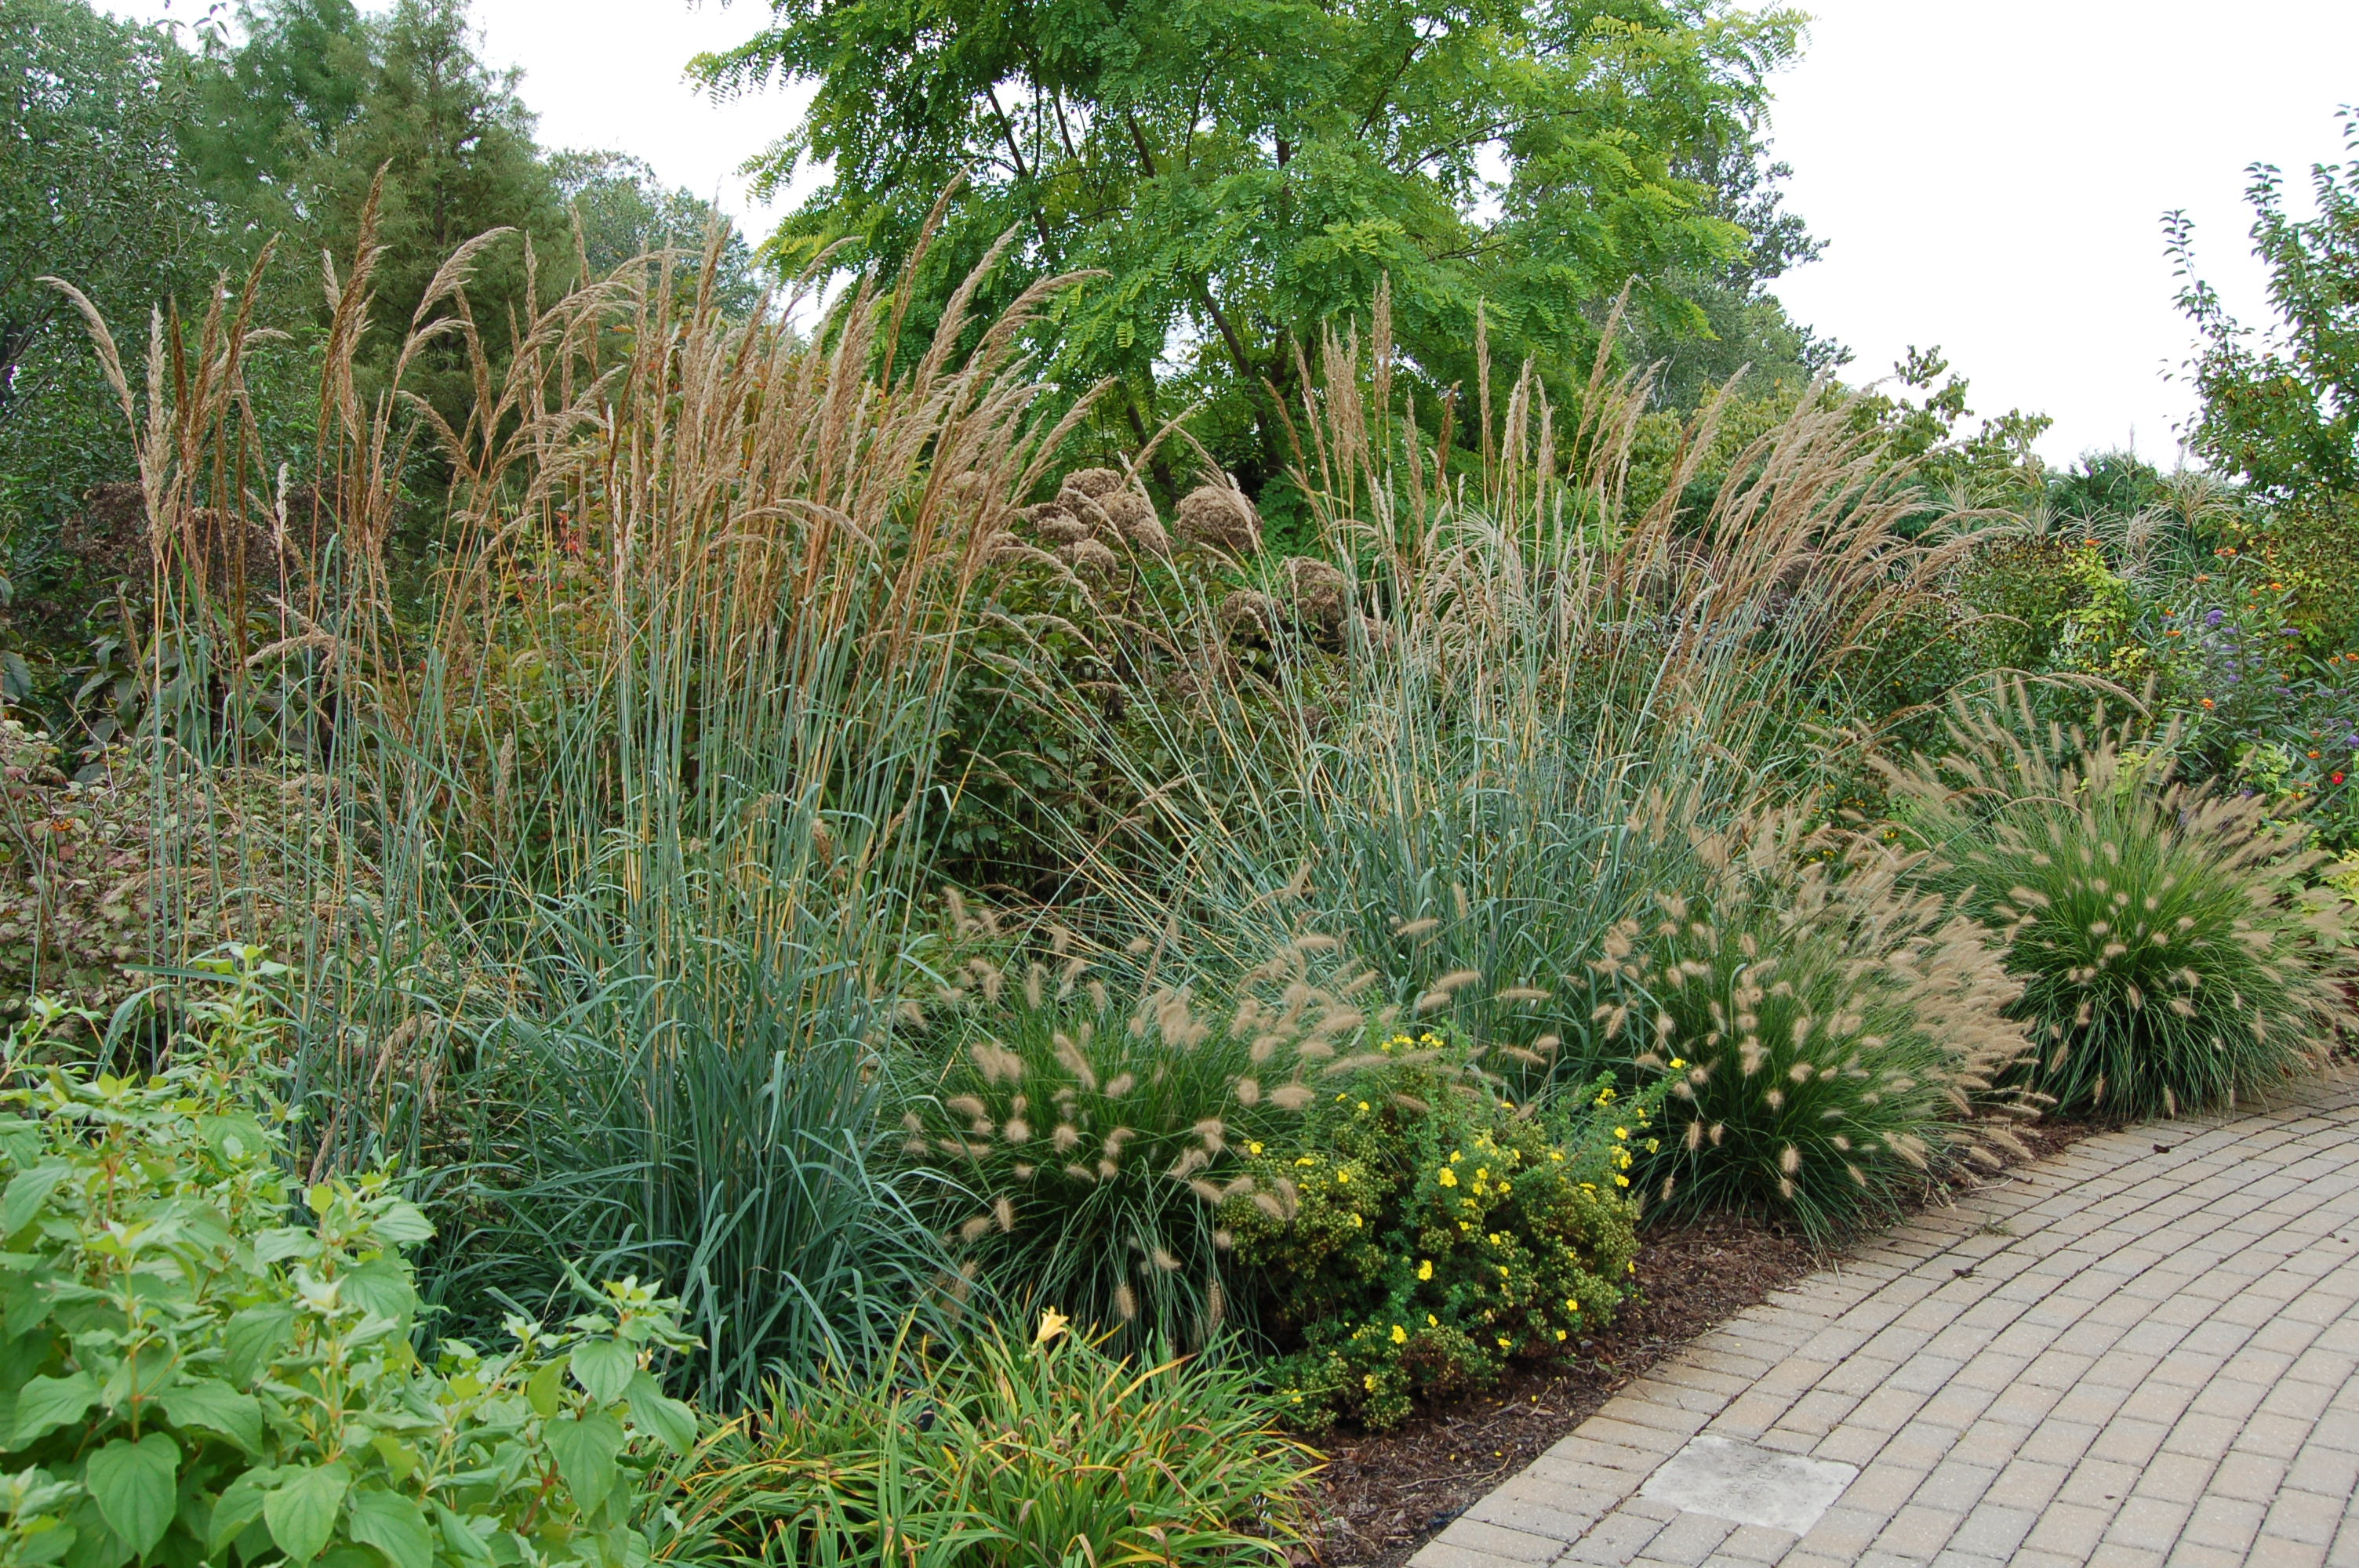 10 favorite ornamental grasses for midwest landscaping for Decorative lawn grass